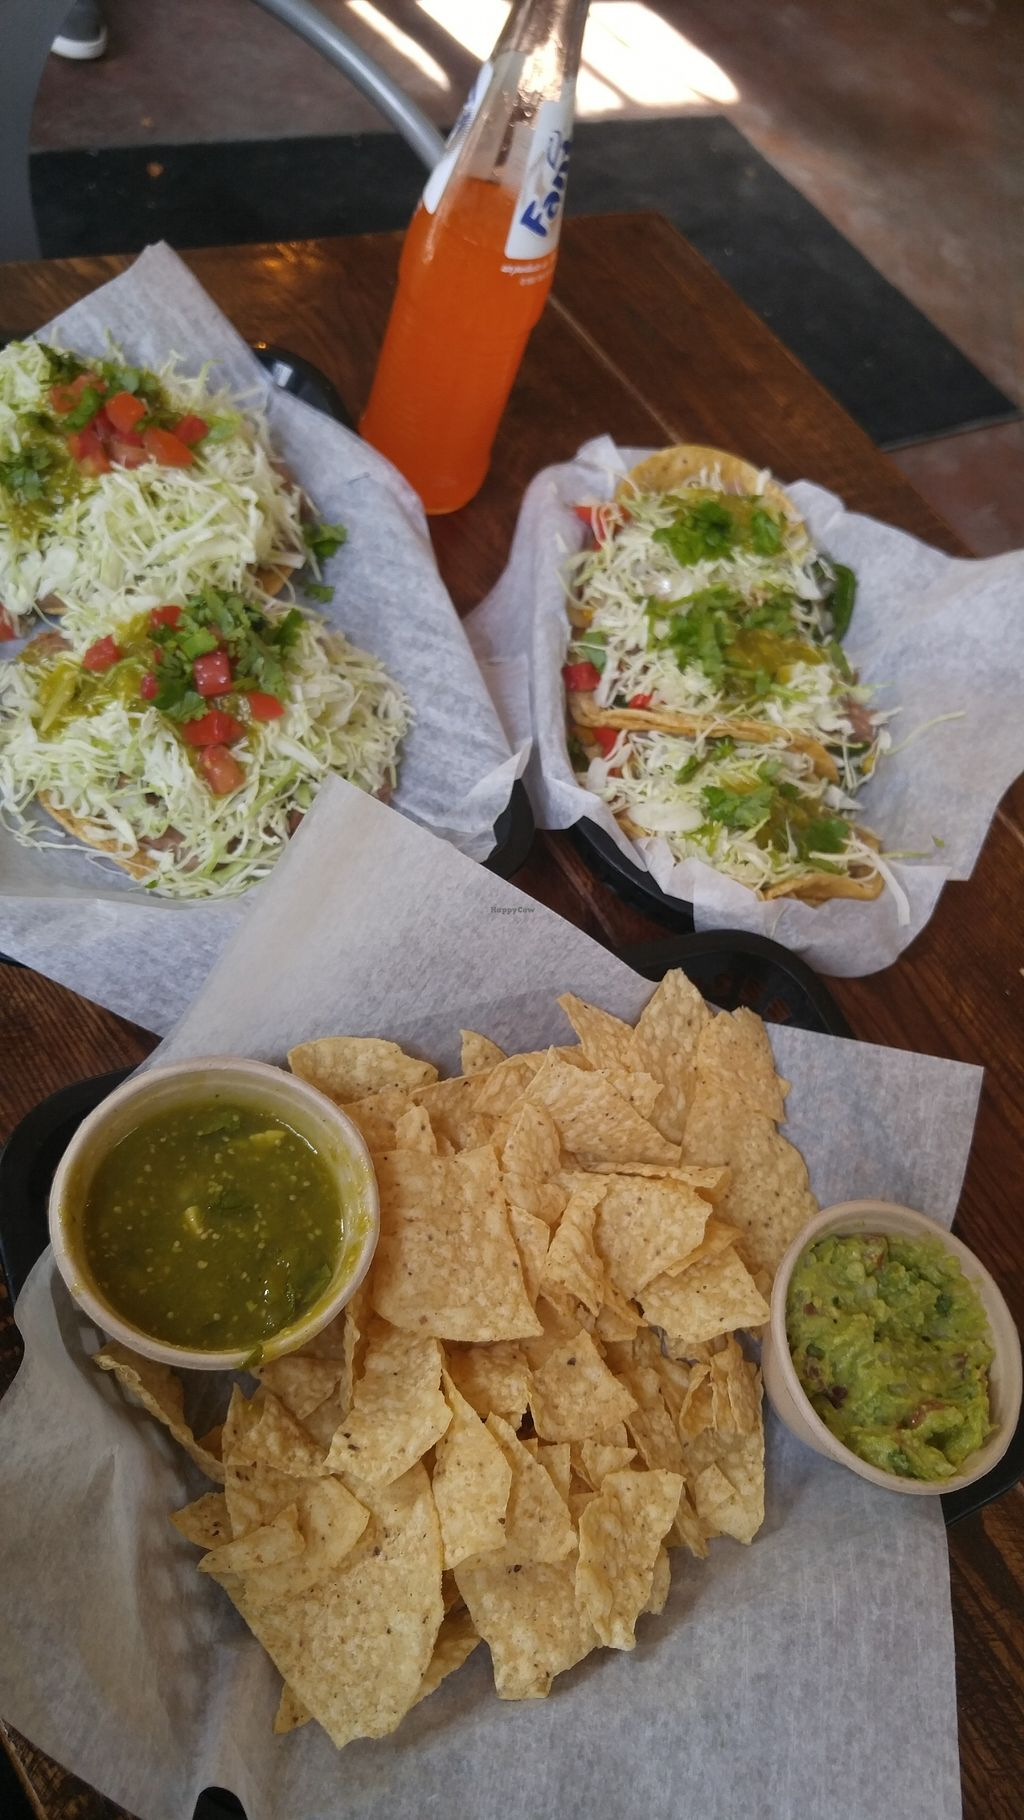 "Photo of Spanglish  by <a href=""/members/profile/bms2120"">bms2120</a> <br/>Chips with salsa verde and guacamole